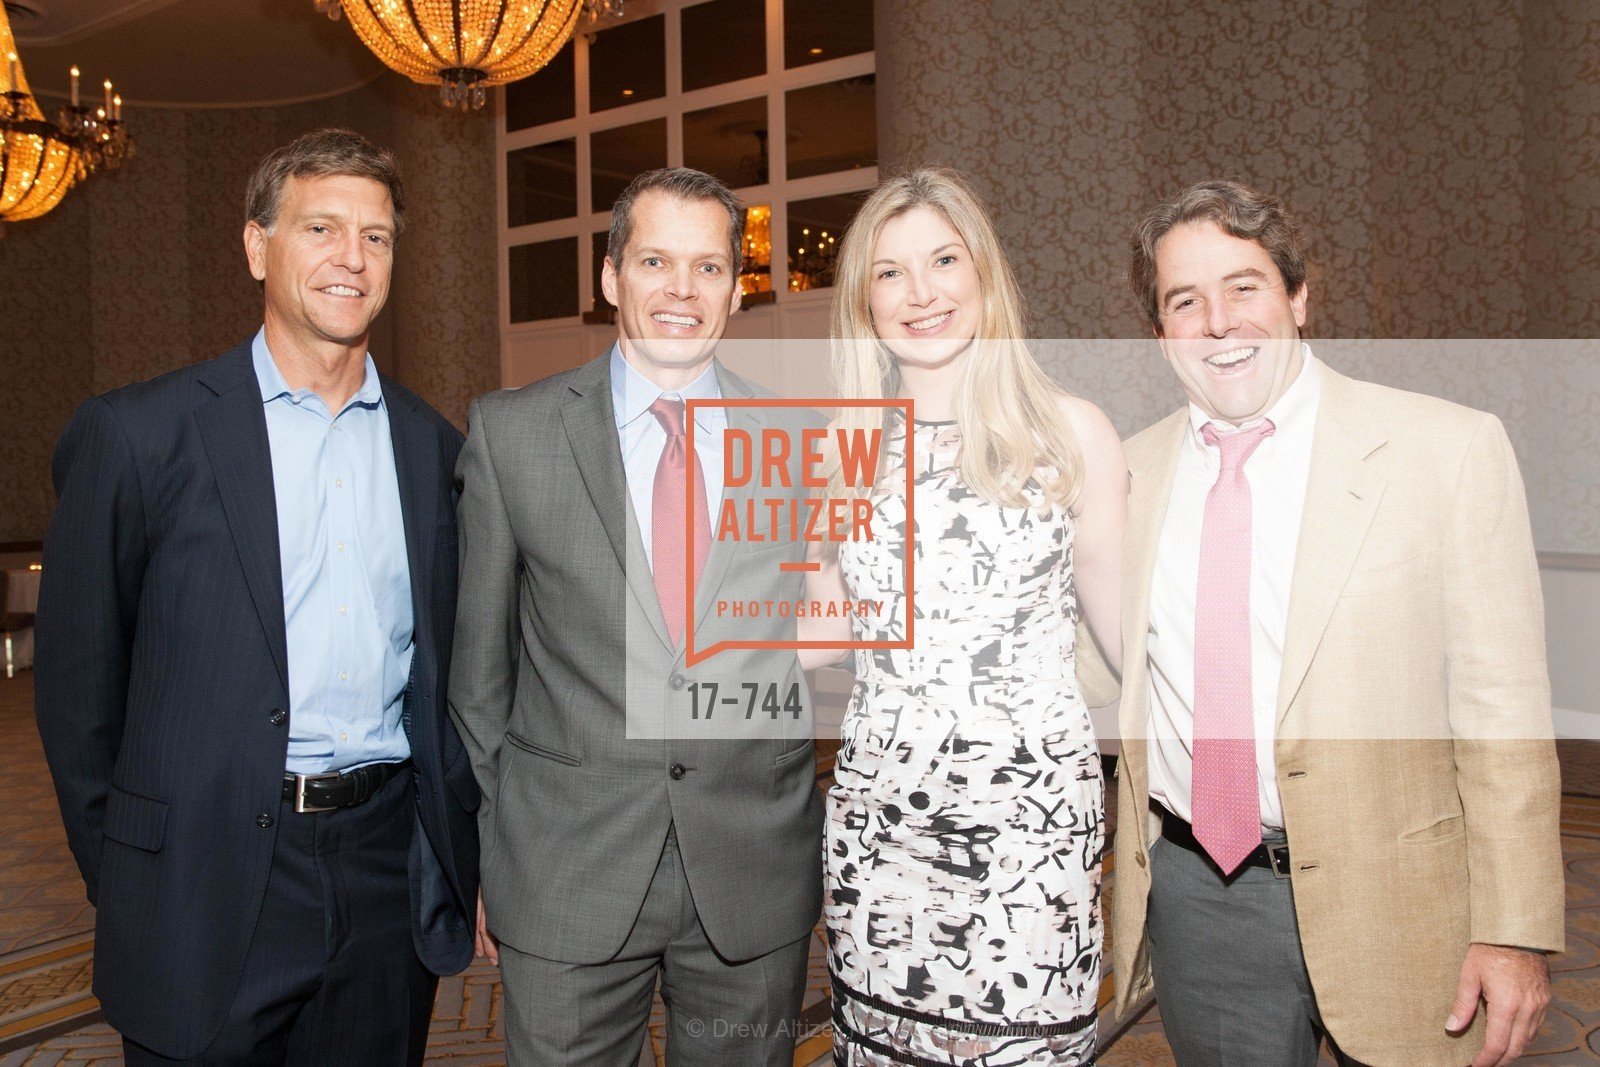 Don Shaver, Rob Connolly, Cameron Phleger, Michael Horwitz, Celebration of Launch of SHYP in Los Angeles, US, May 21st, 2015,Drew Altizer, Drew Altizer Photography, full-service event agency, private events, San Francisco photographer, photographer California